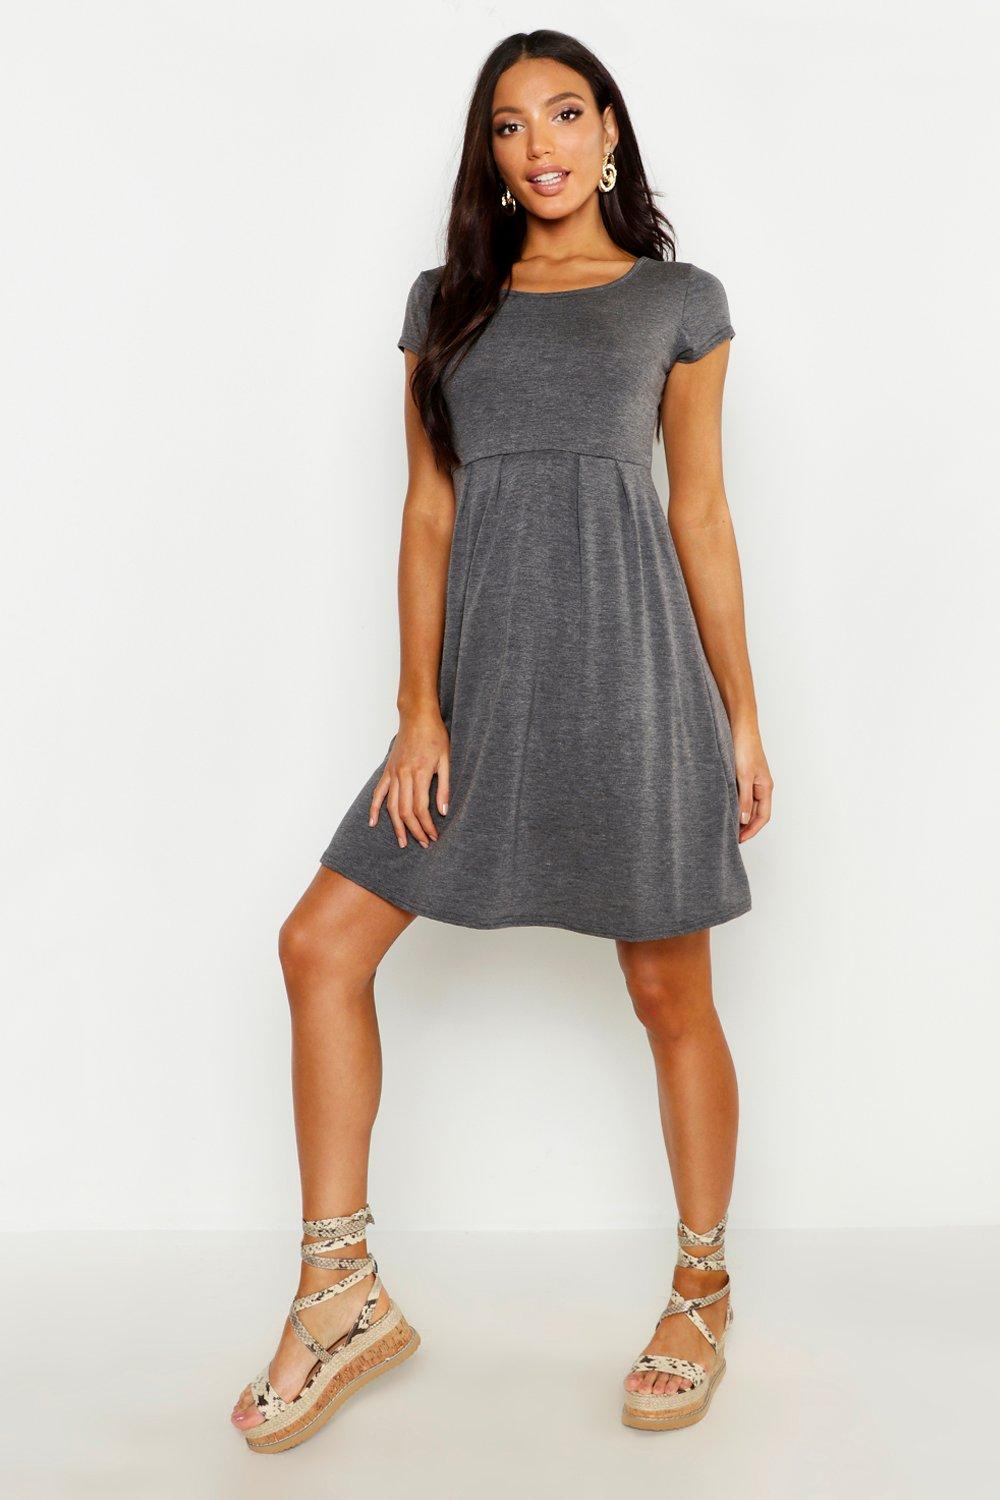 dd8de9fc8d19 Jersey Cap Sleeve Skater Dress. Hover to zoom